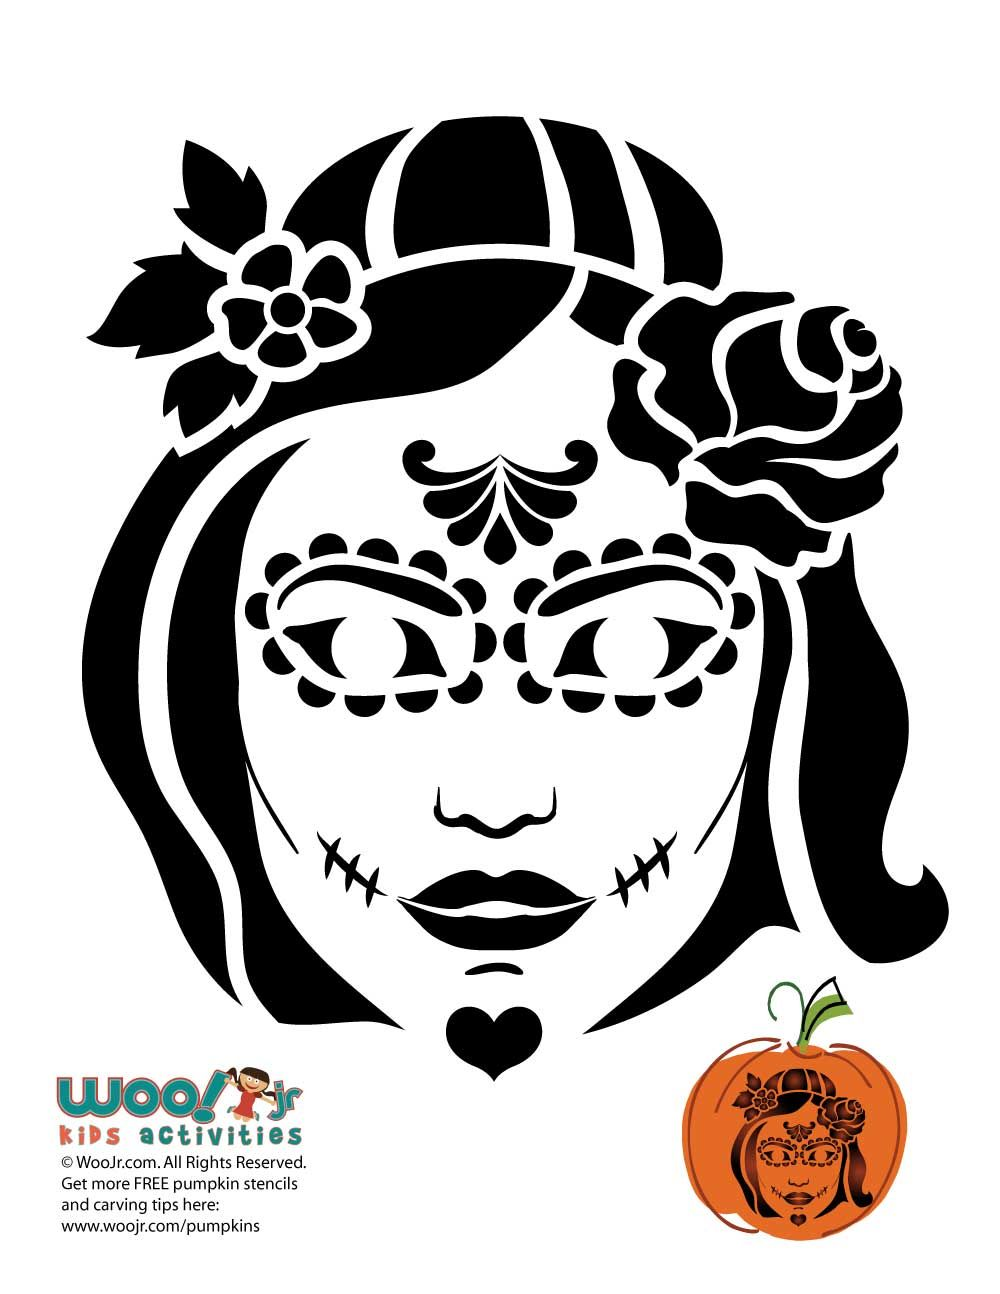 Day of the Dead Woman Pumpkin Stencil | Stenciling, Pumpkin carvings ...